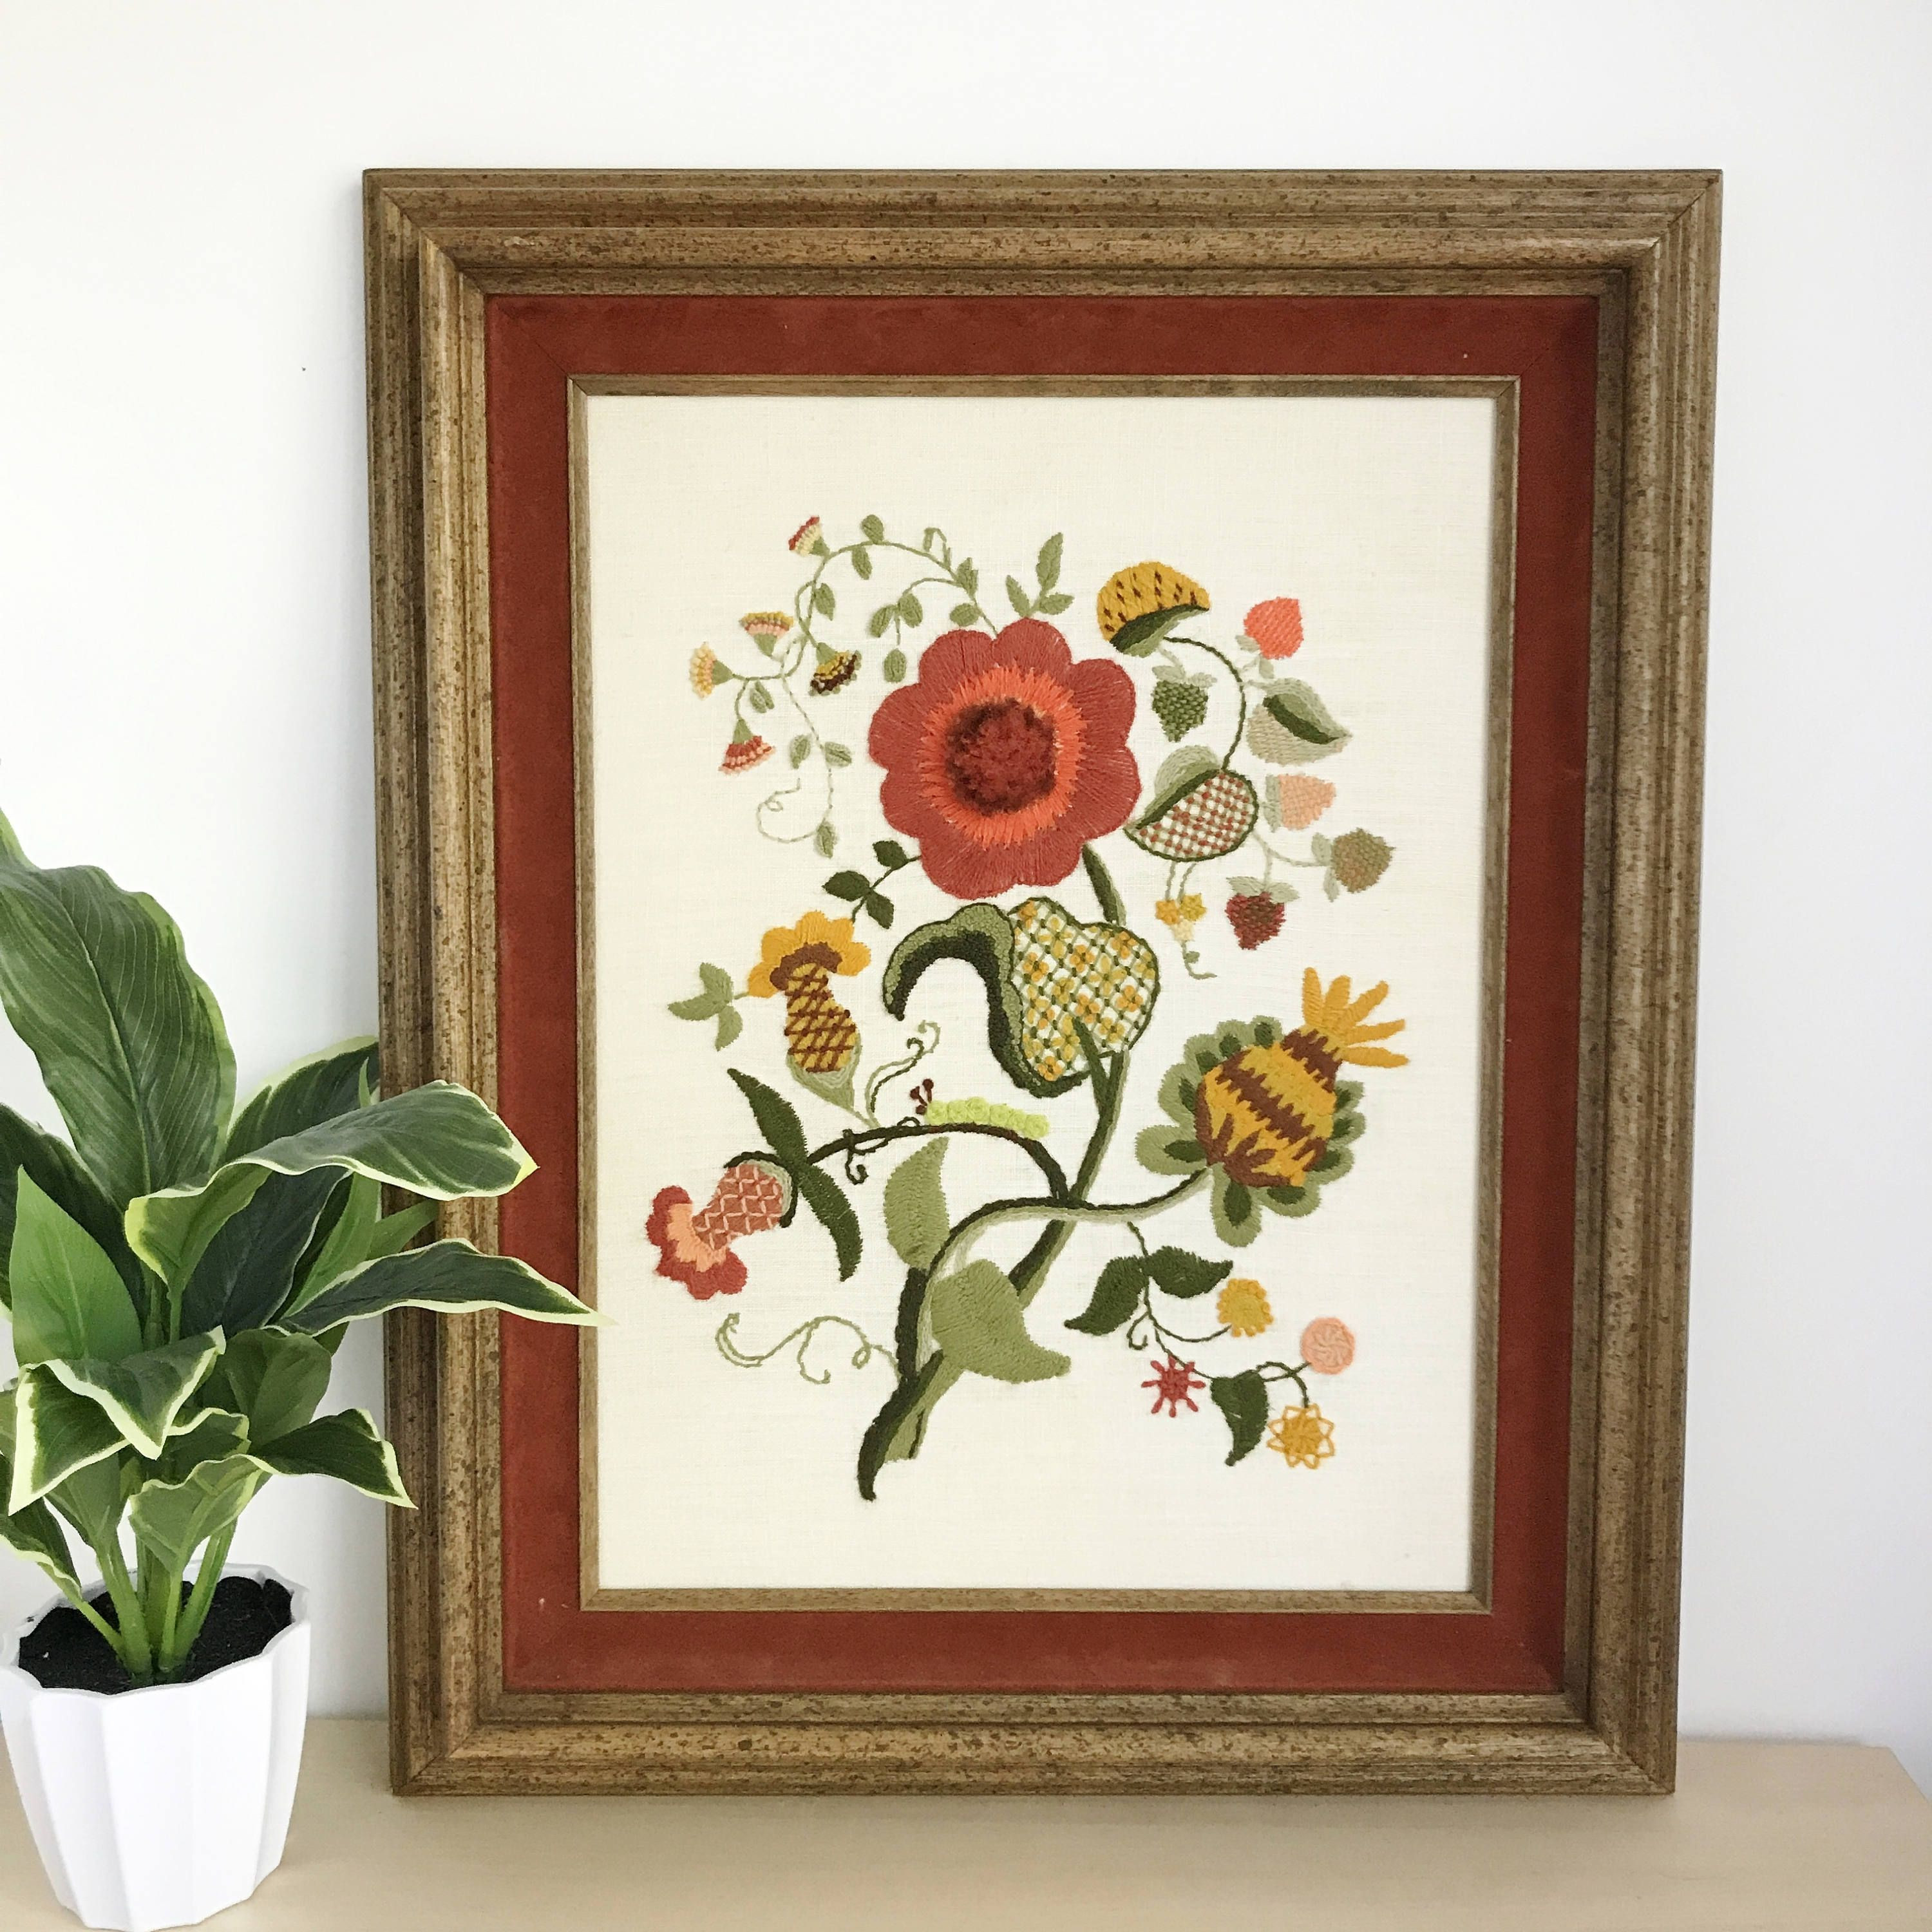 Vintage Crewel Embroidery Framed Art Textile Wall Art 17""